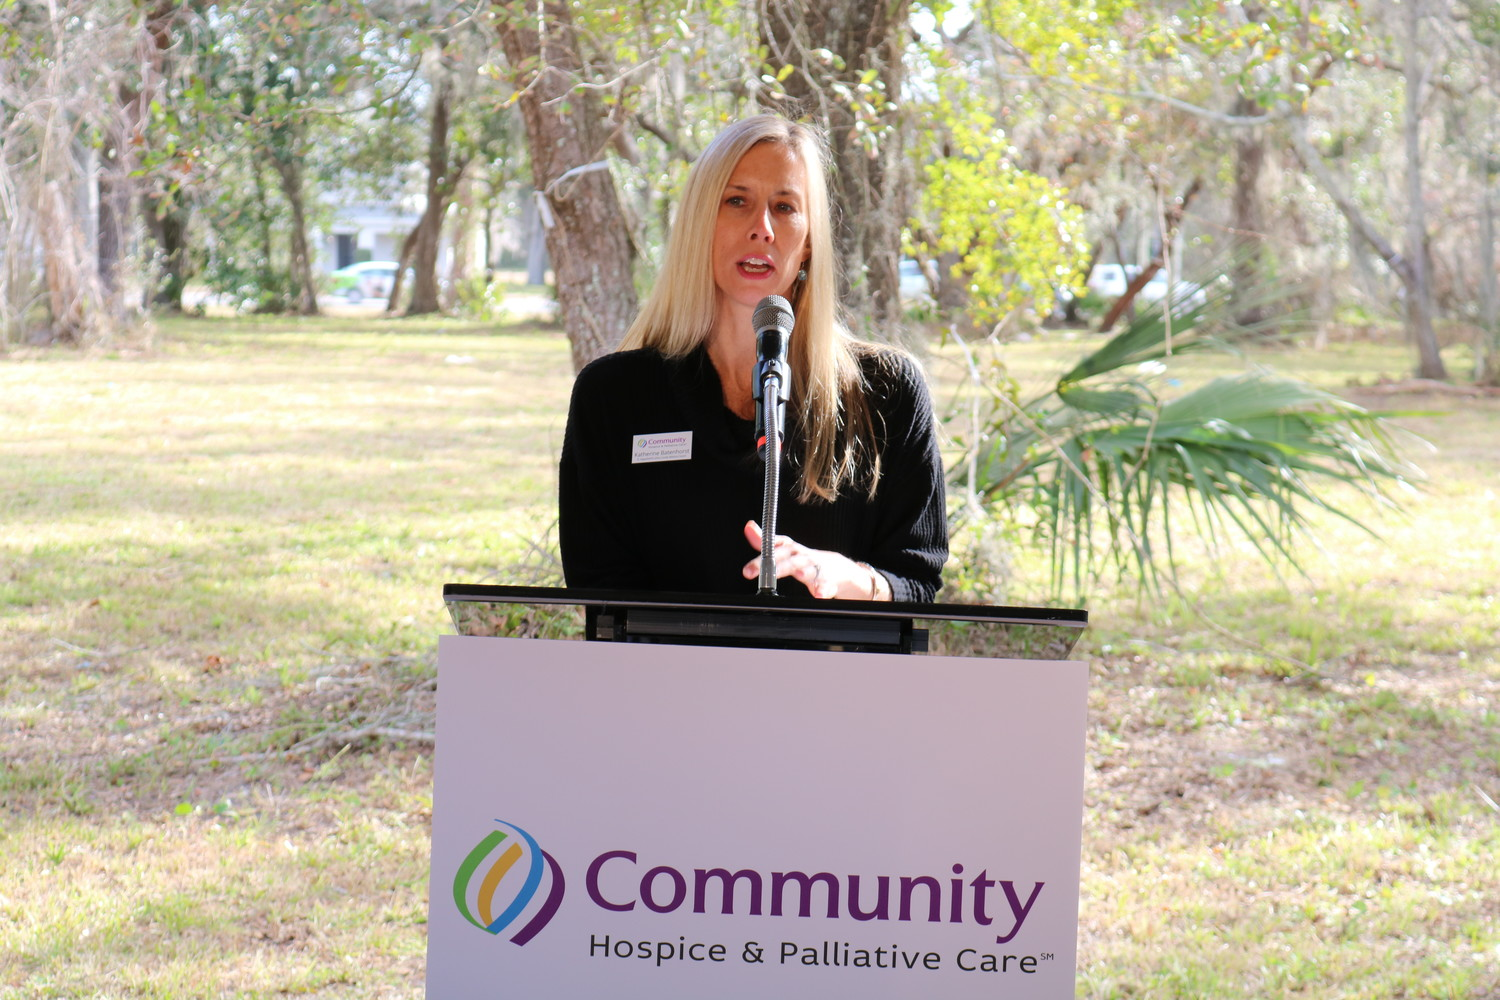 Katherine Batenhorst, who serves as chair of the organization's St. Augustine/St. Johns County Advisory Council, speaks at the groundbreaking ceremony.